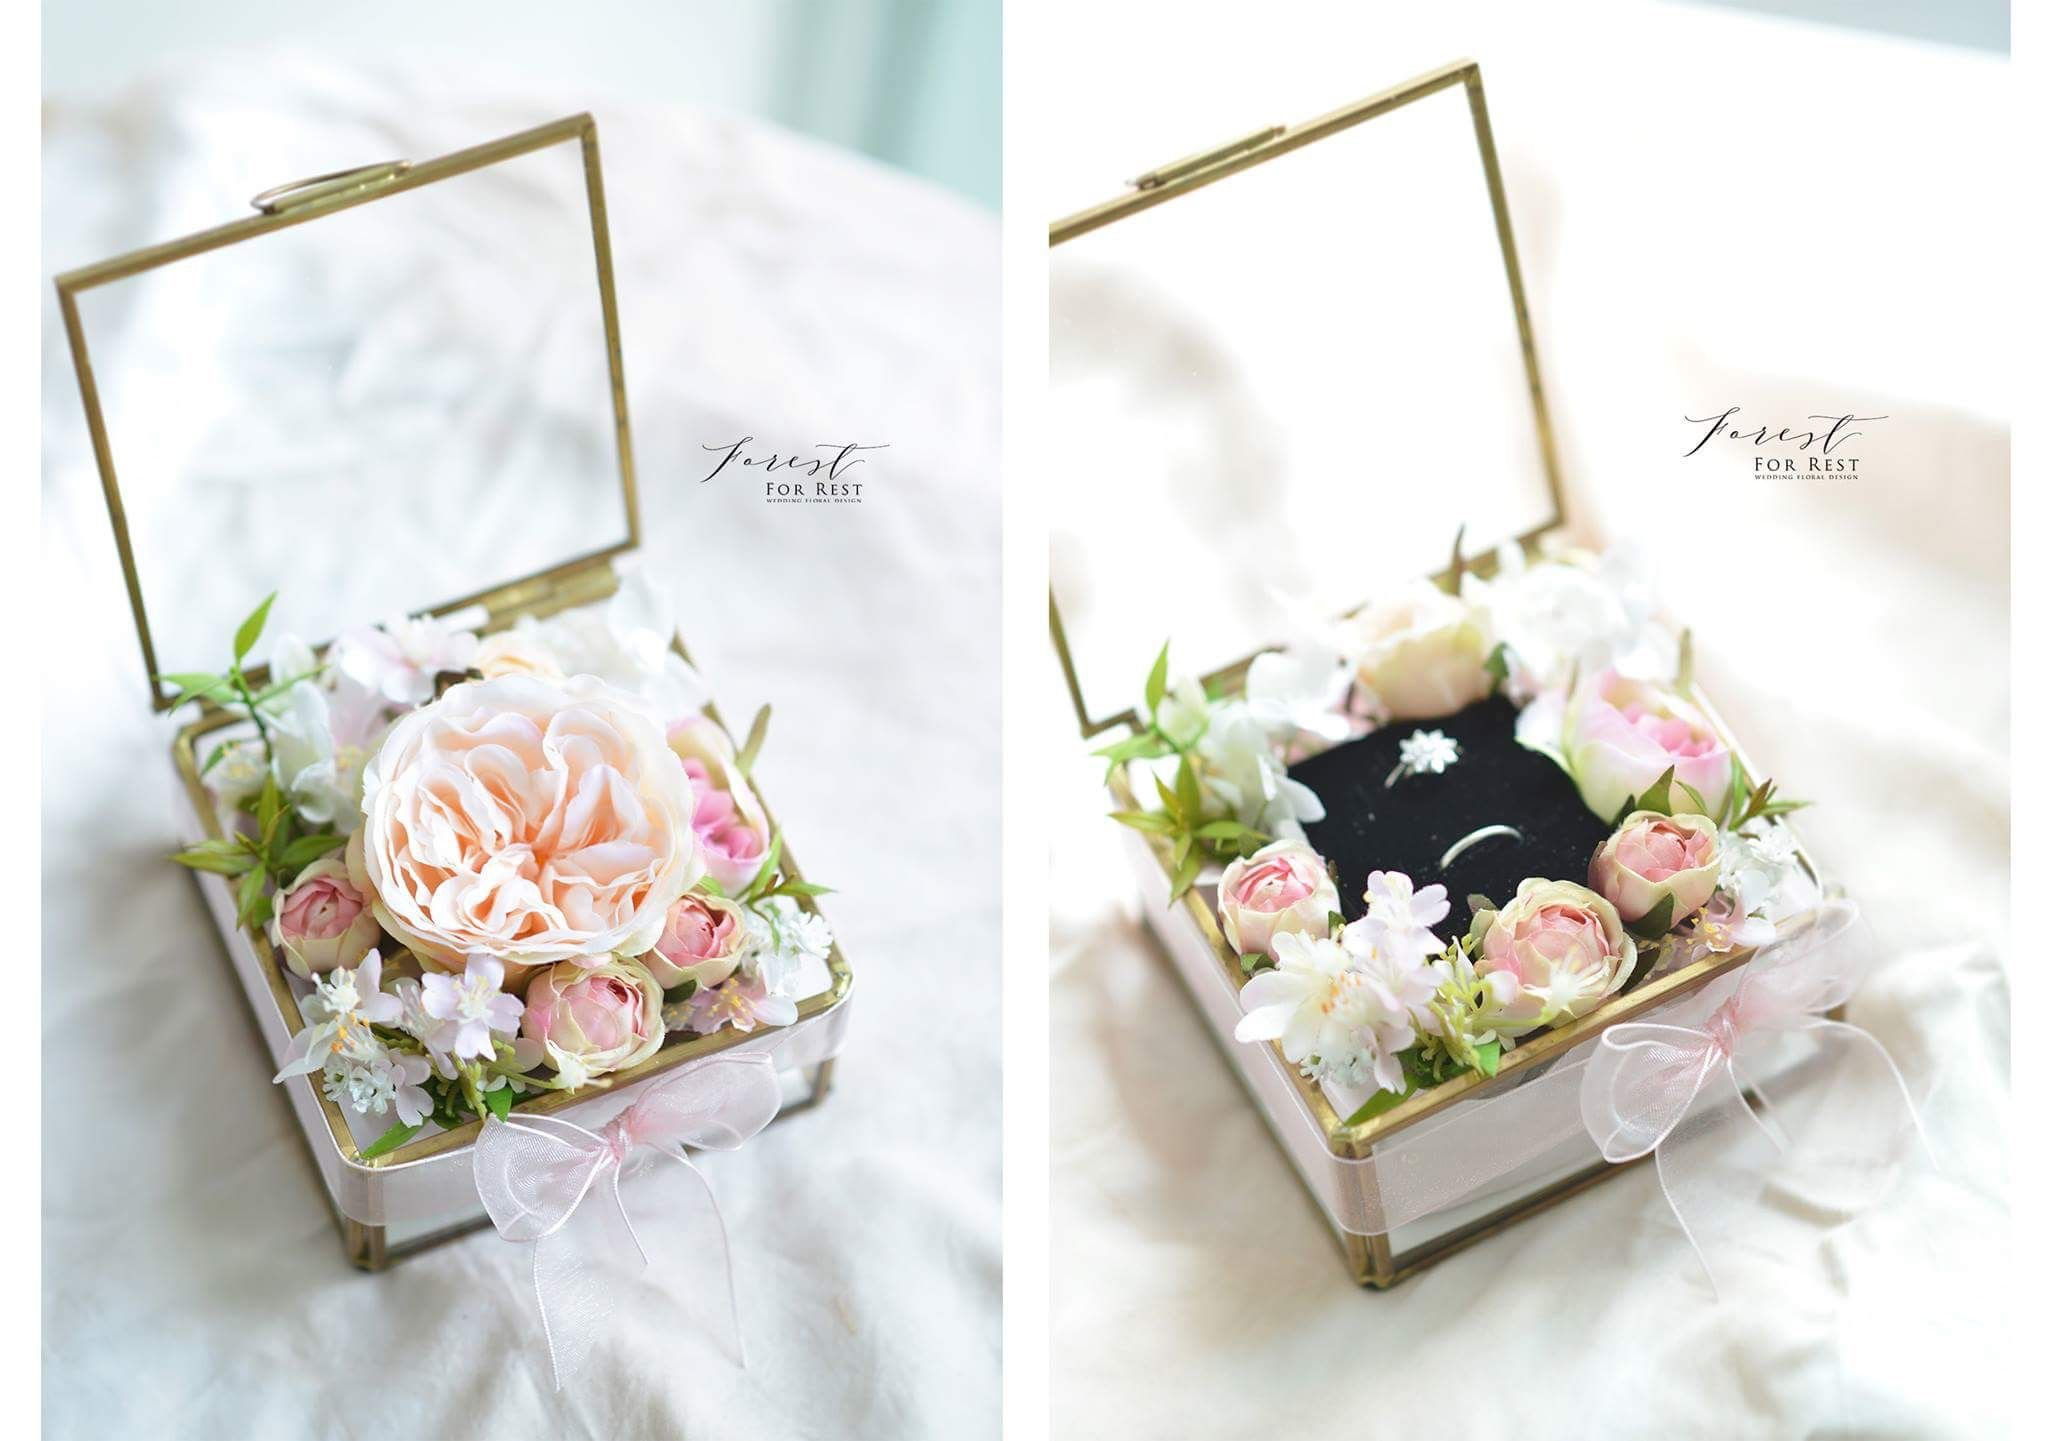 For Necklace Wedding Gifts Packaging Flower Box Gift Wedding Gift Boxes